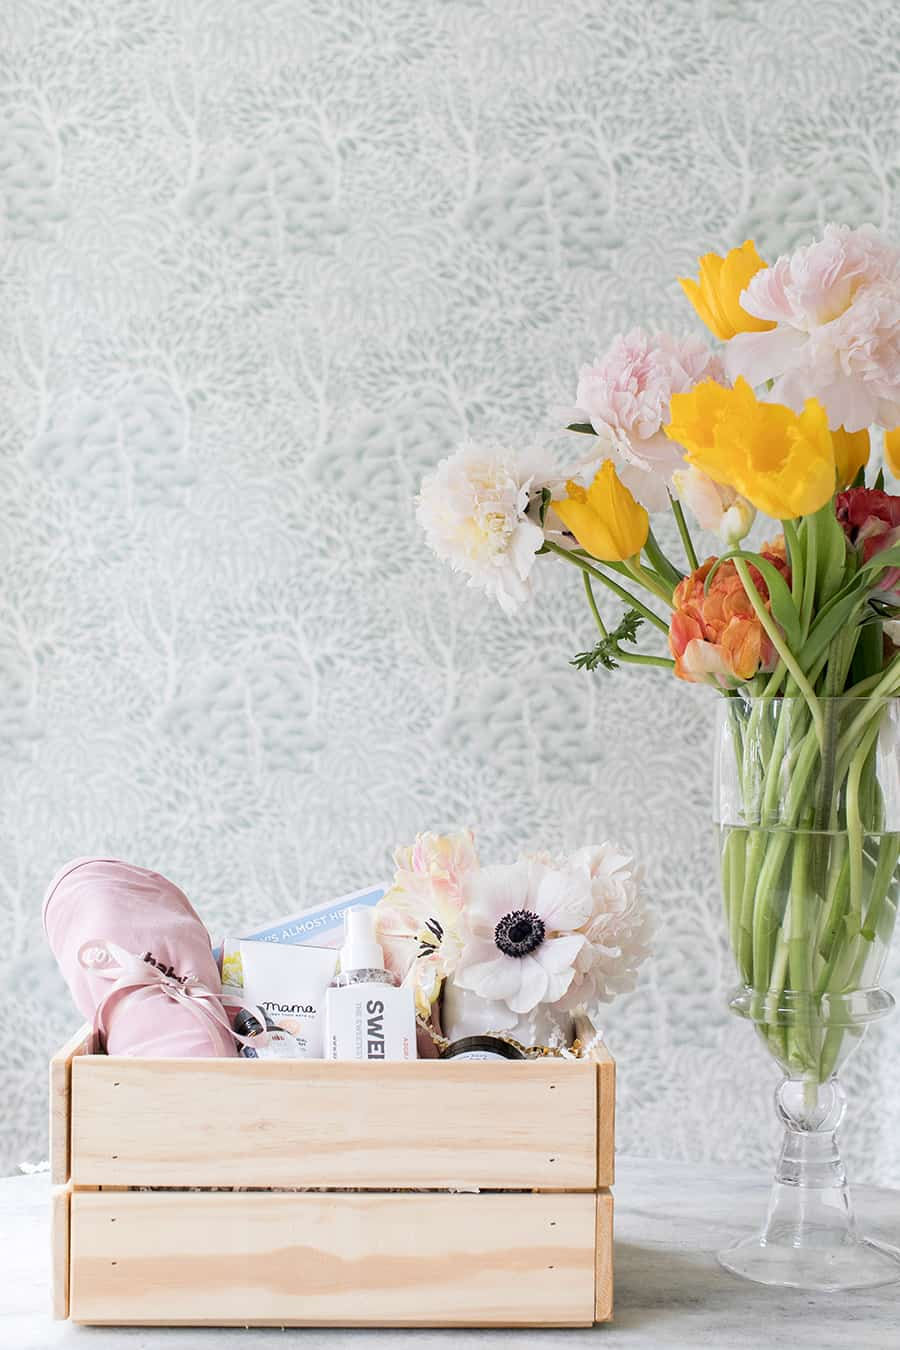 Baby gift basket in a wooden crate with flowers.